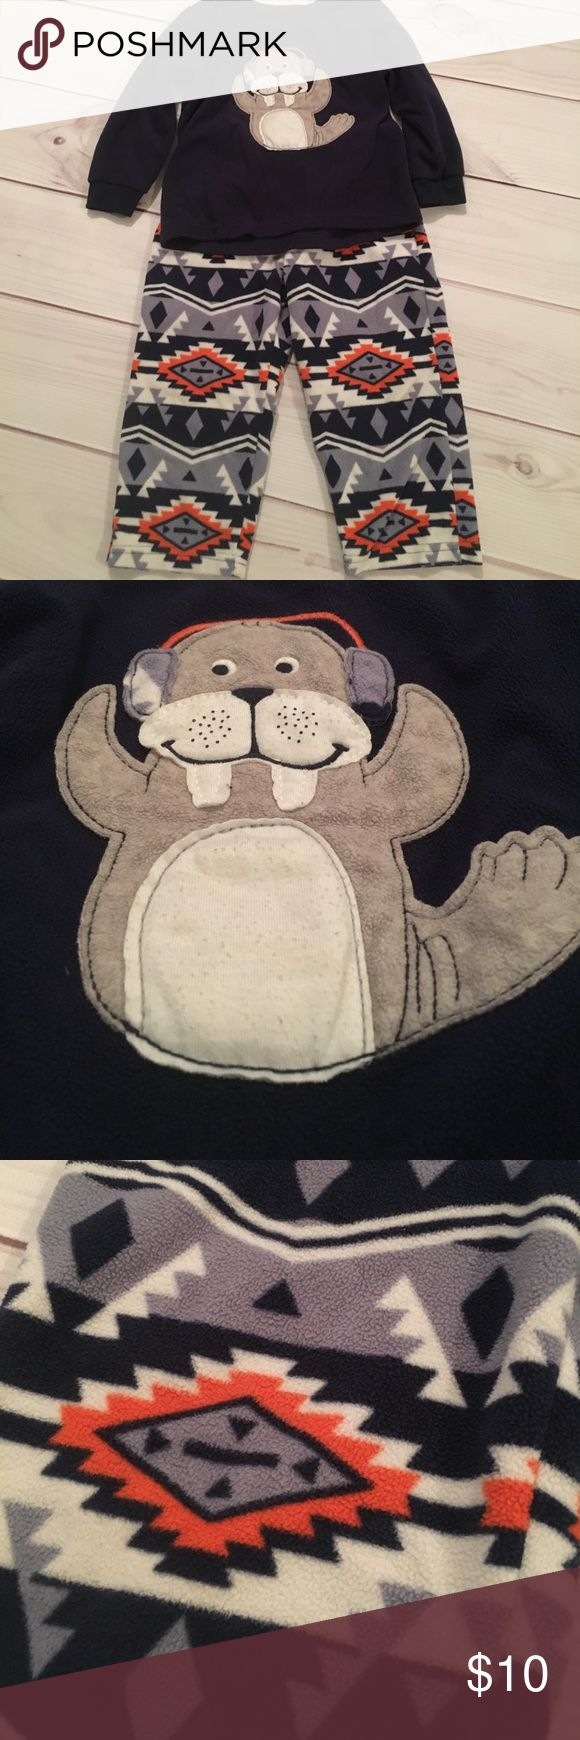 """Boys Fleece Pajamas 2 piece fleece pajamas  Worn a handful of times but in great condition  Walrus has some """"pricklies"""" on it but that's the only flaw Carter's Pajamas Pajama Sets"""